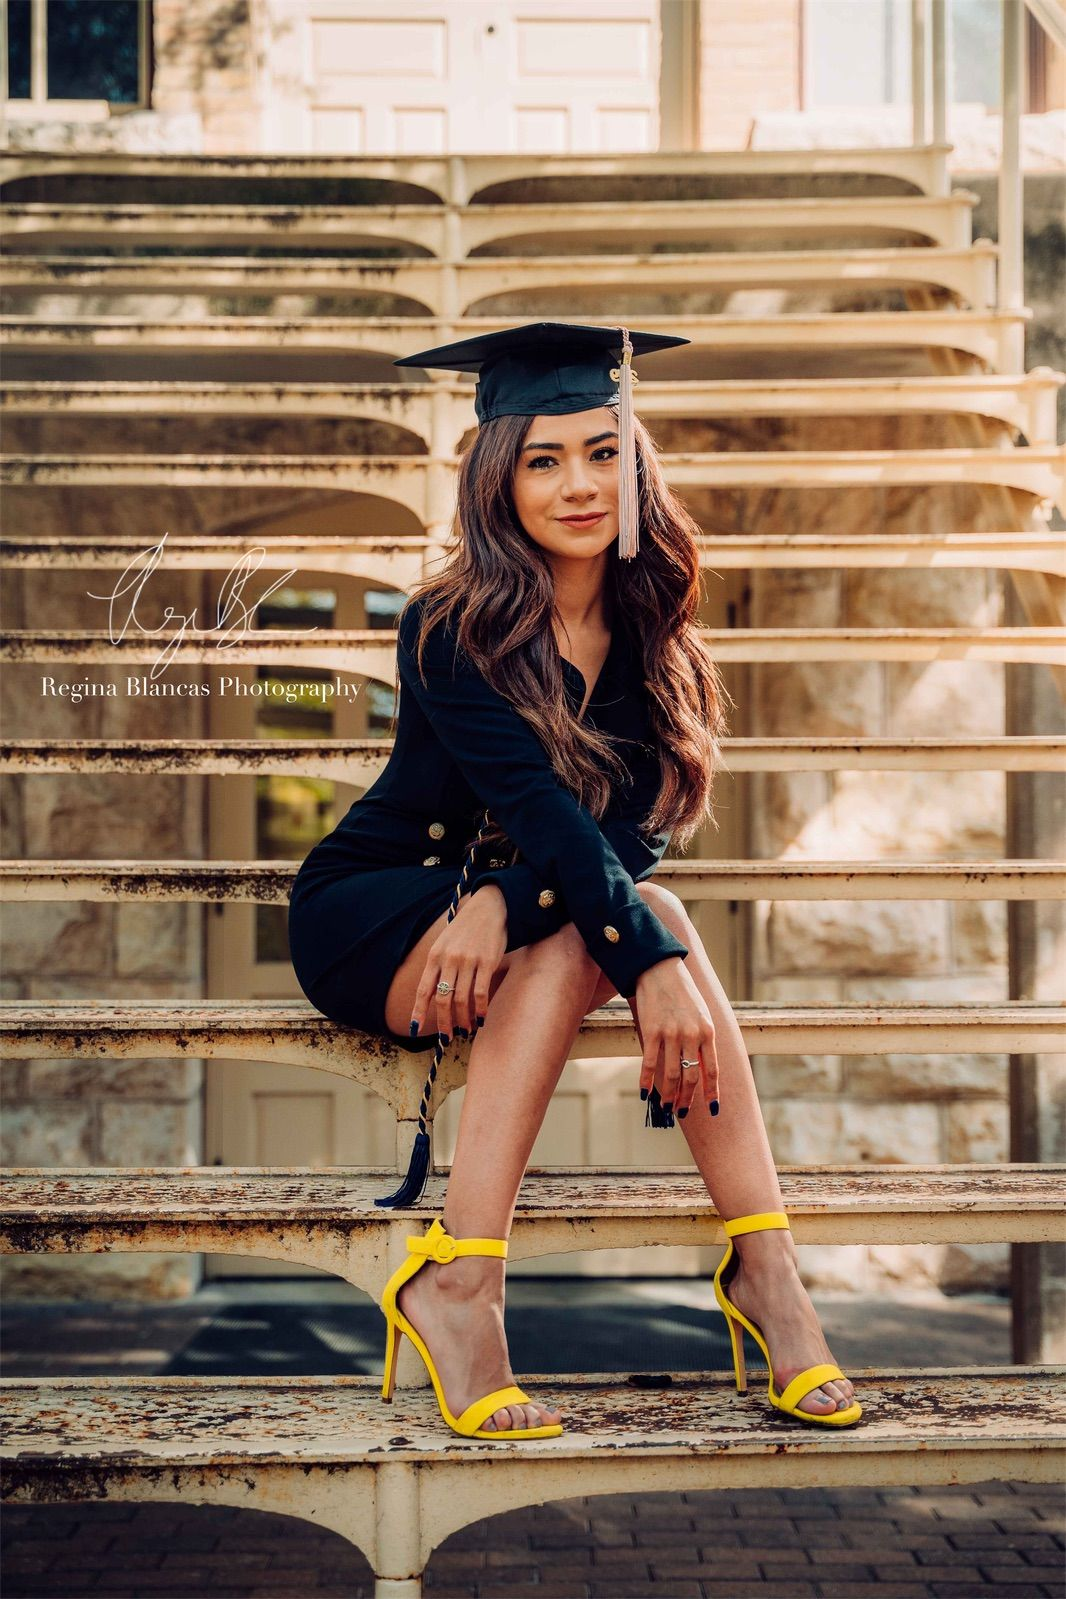 Graduation Picture Ideas Photoshoot Outfit Ideas Grad Photoshoot Girl Graduation Pictures Graduation Picture Poses